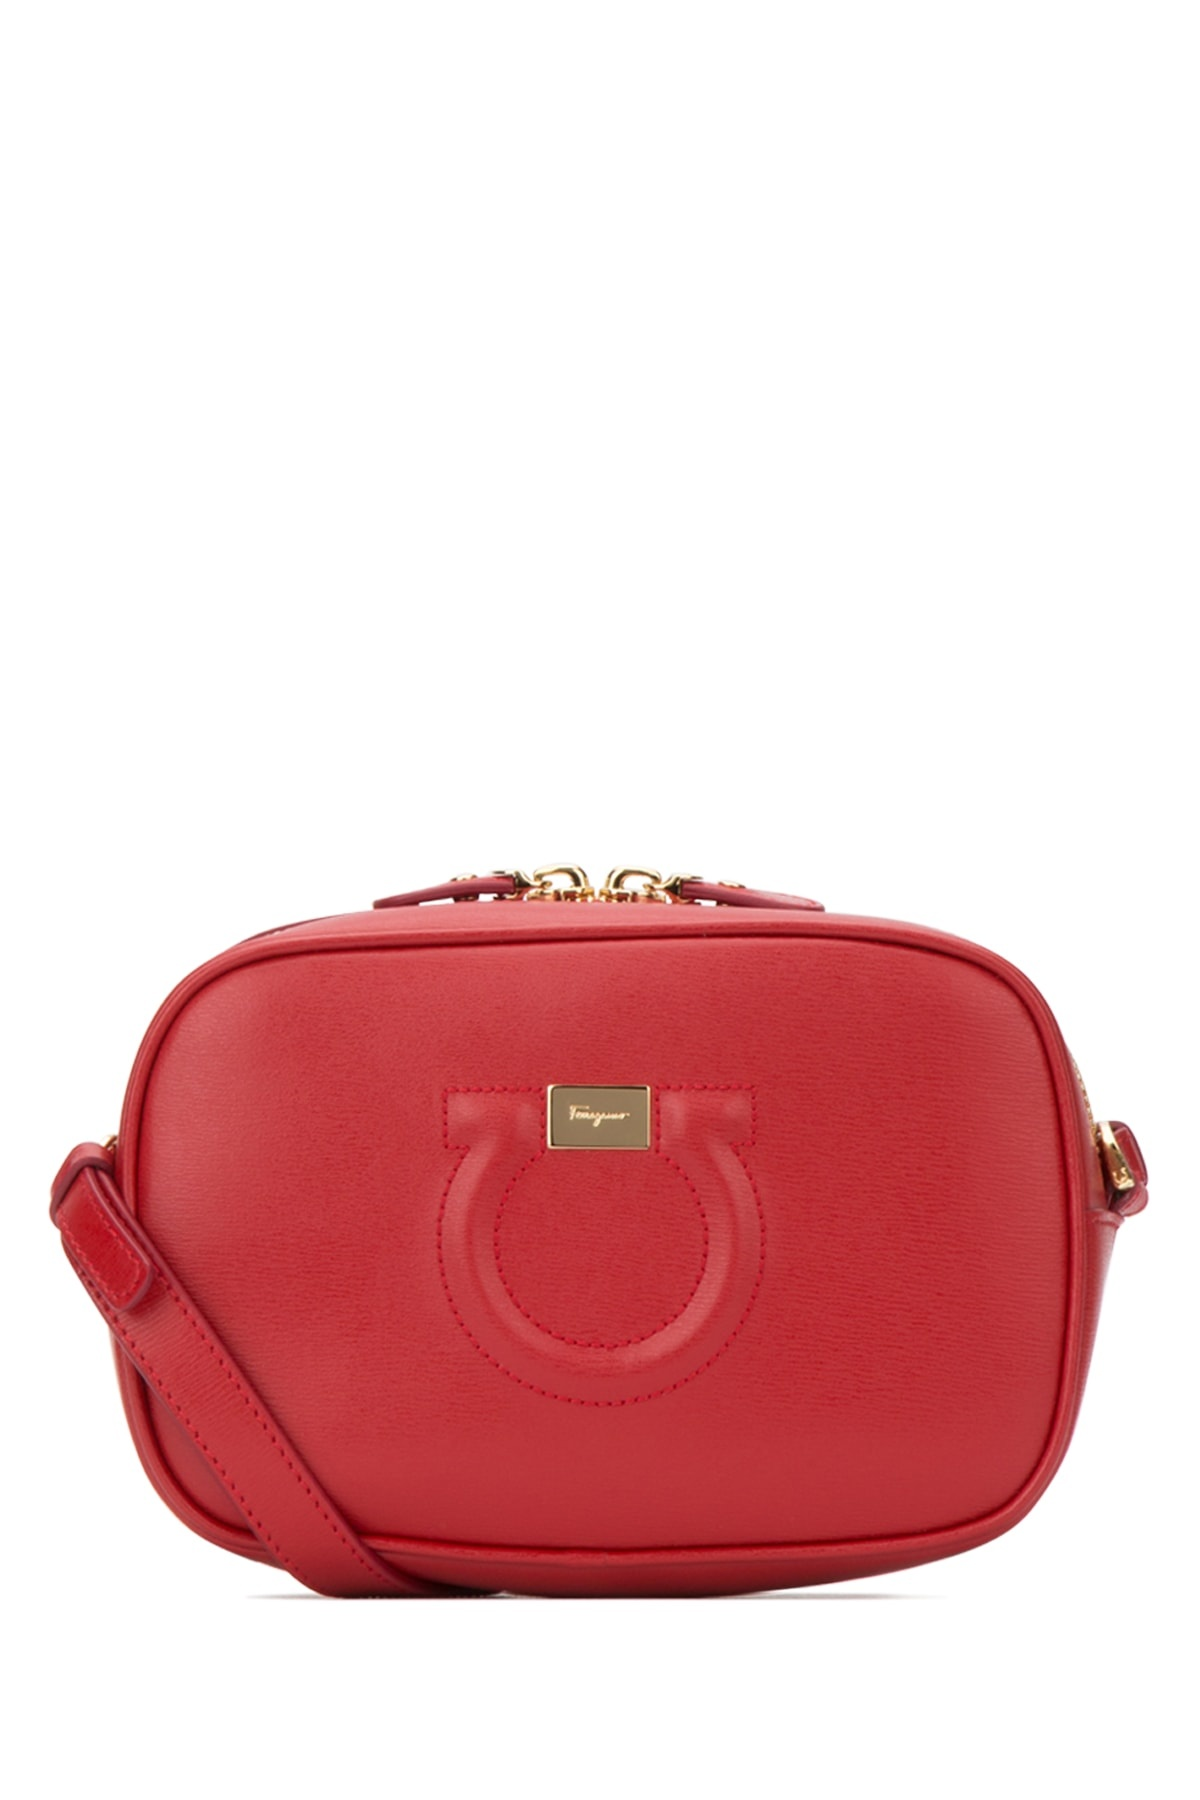 SALVATORE FERRAGAMO SALVATORE FERRAGAMO - HANDBAG CITY CC - 691324